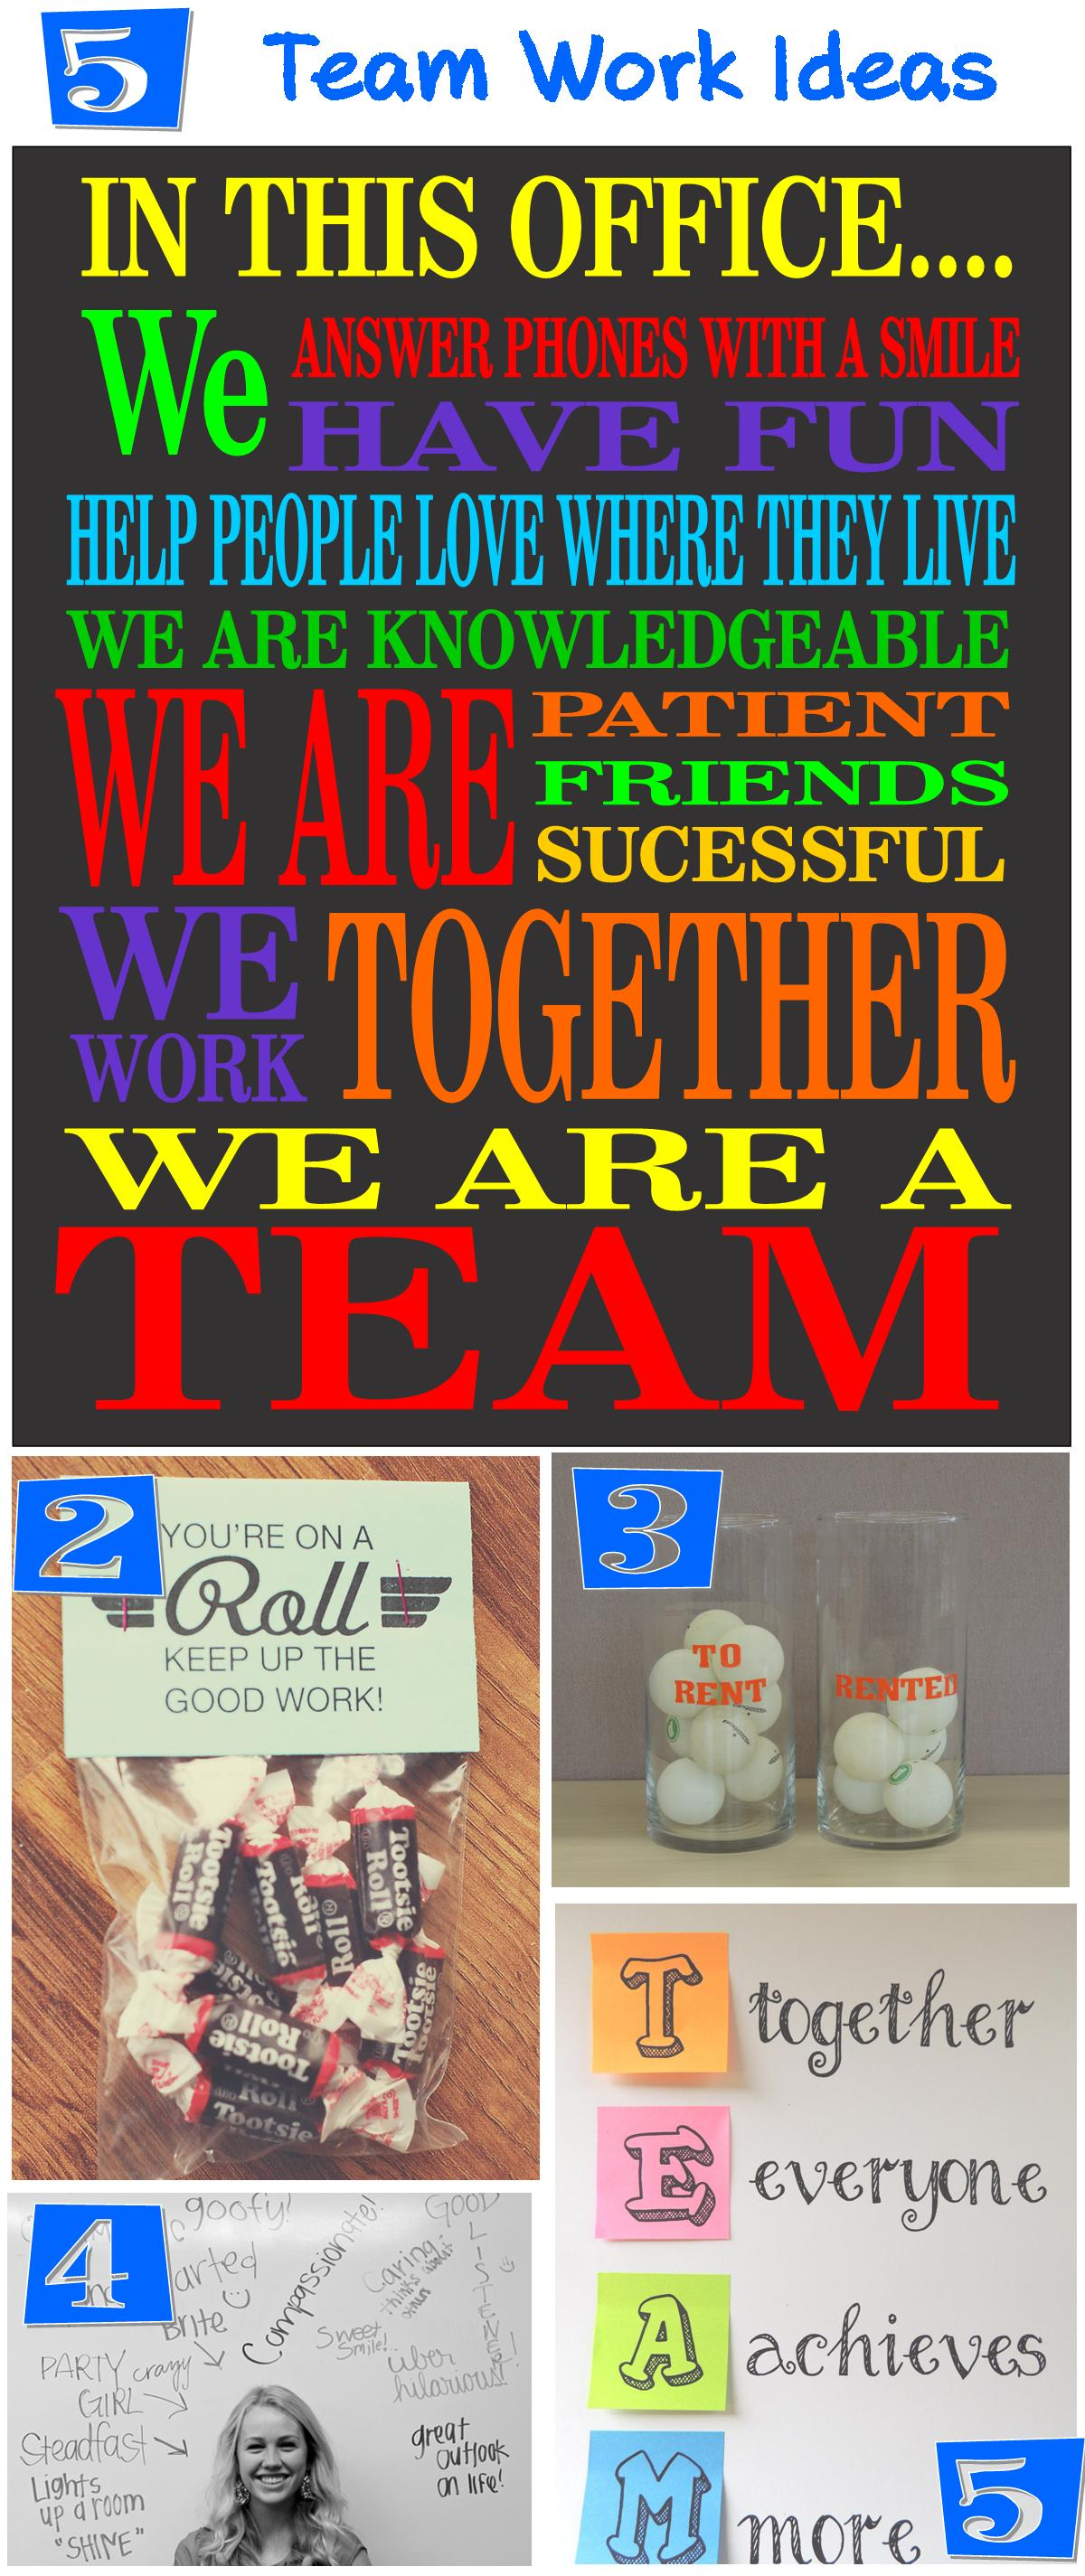 Pictures Funny Team Work Poster Building The Railroad Quotes About